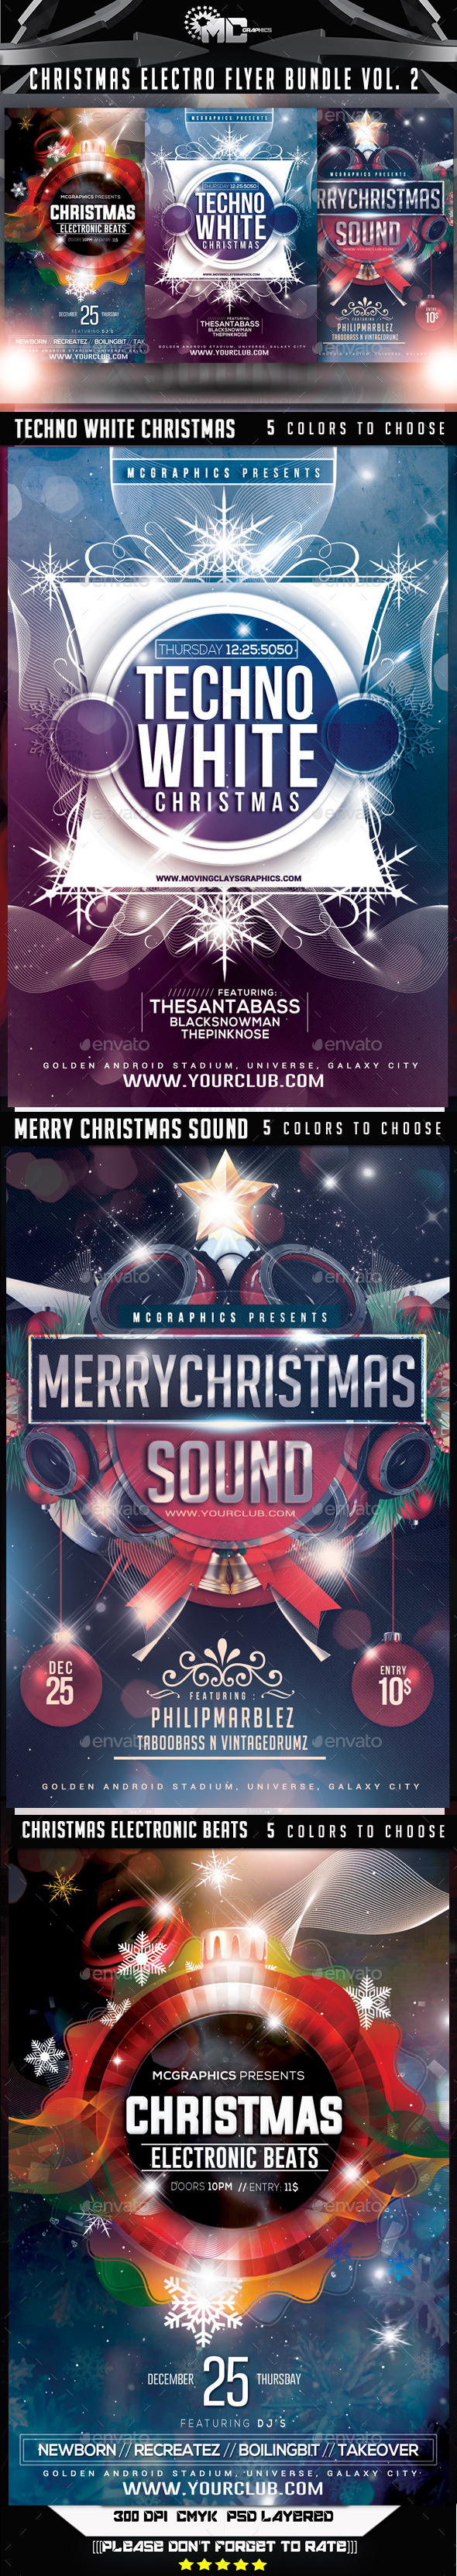 Christmas Electro Flyer Bundle Vol. 2 - Events Flyers